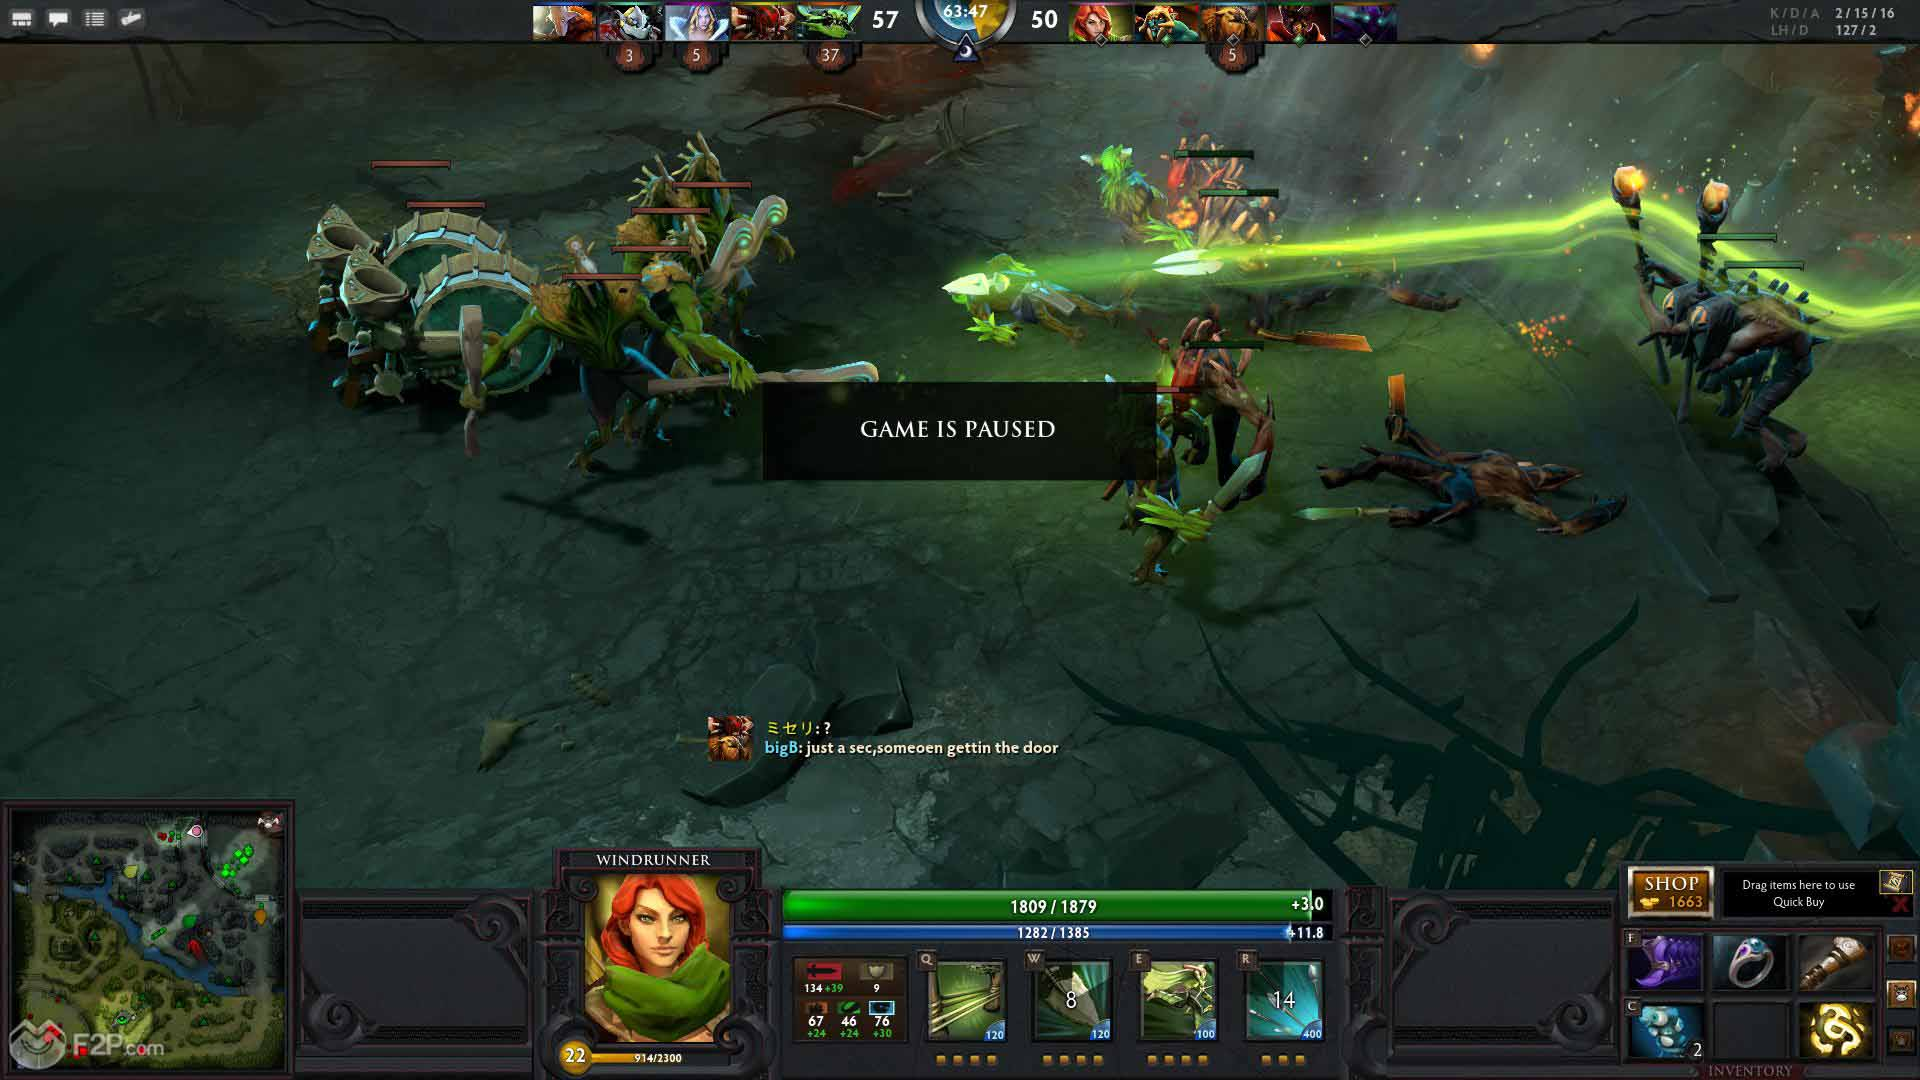 dota variety of game modes Defense of the ancients(shorted to dota)  allstars offers a variety of game modes, selected by the game host at the beginning of the match.